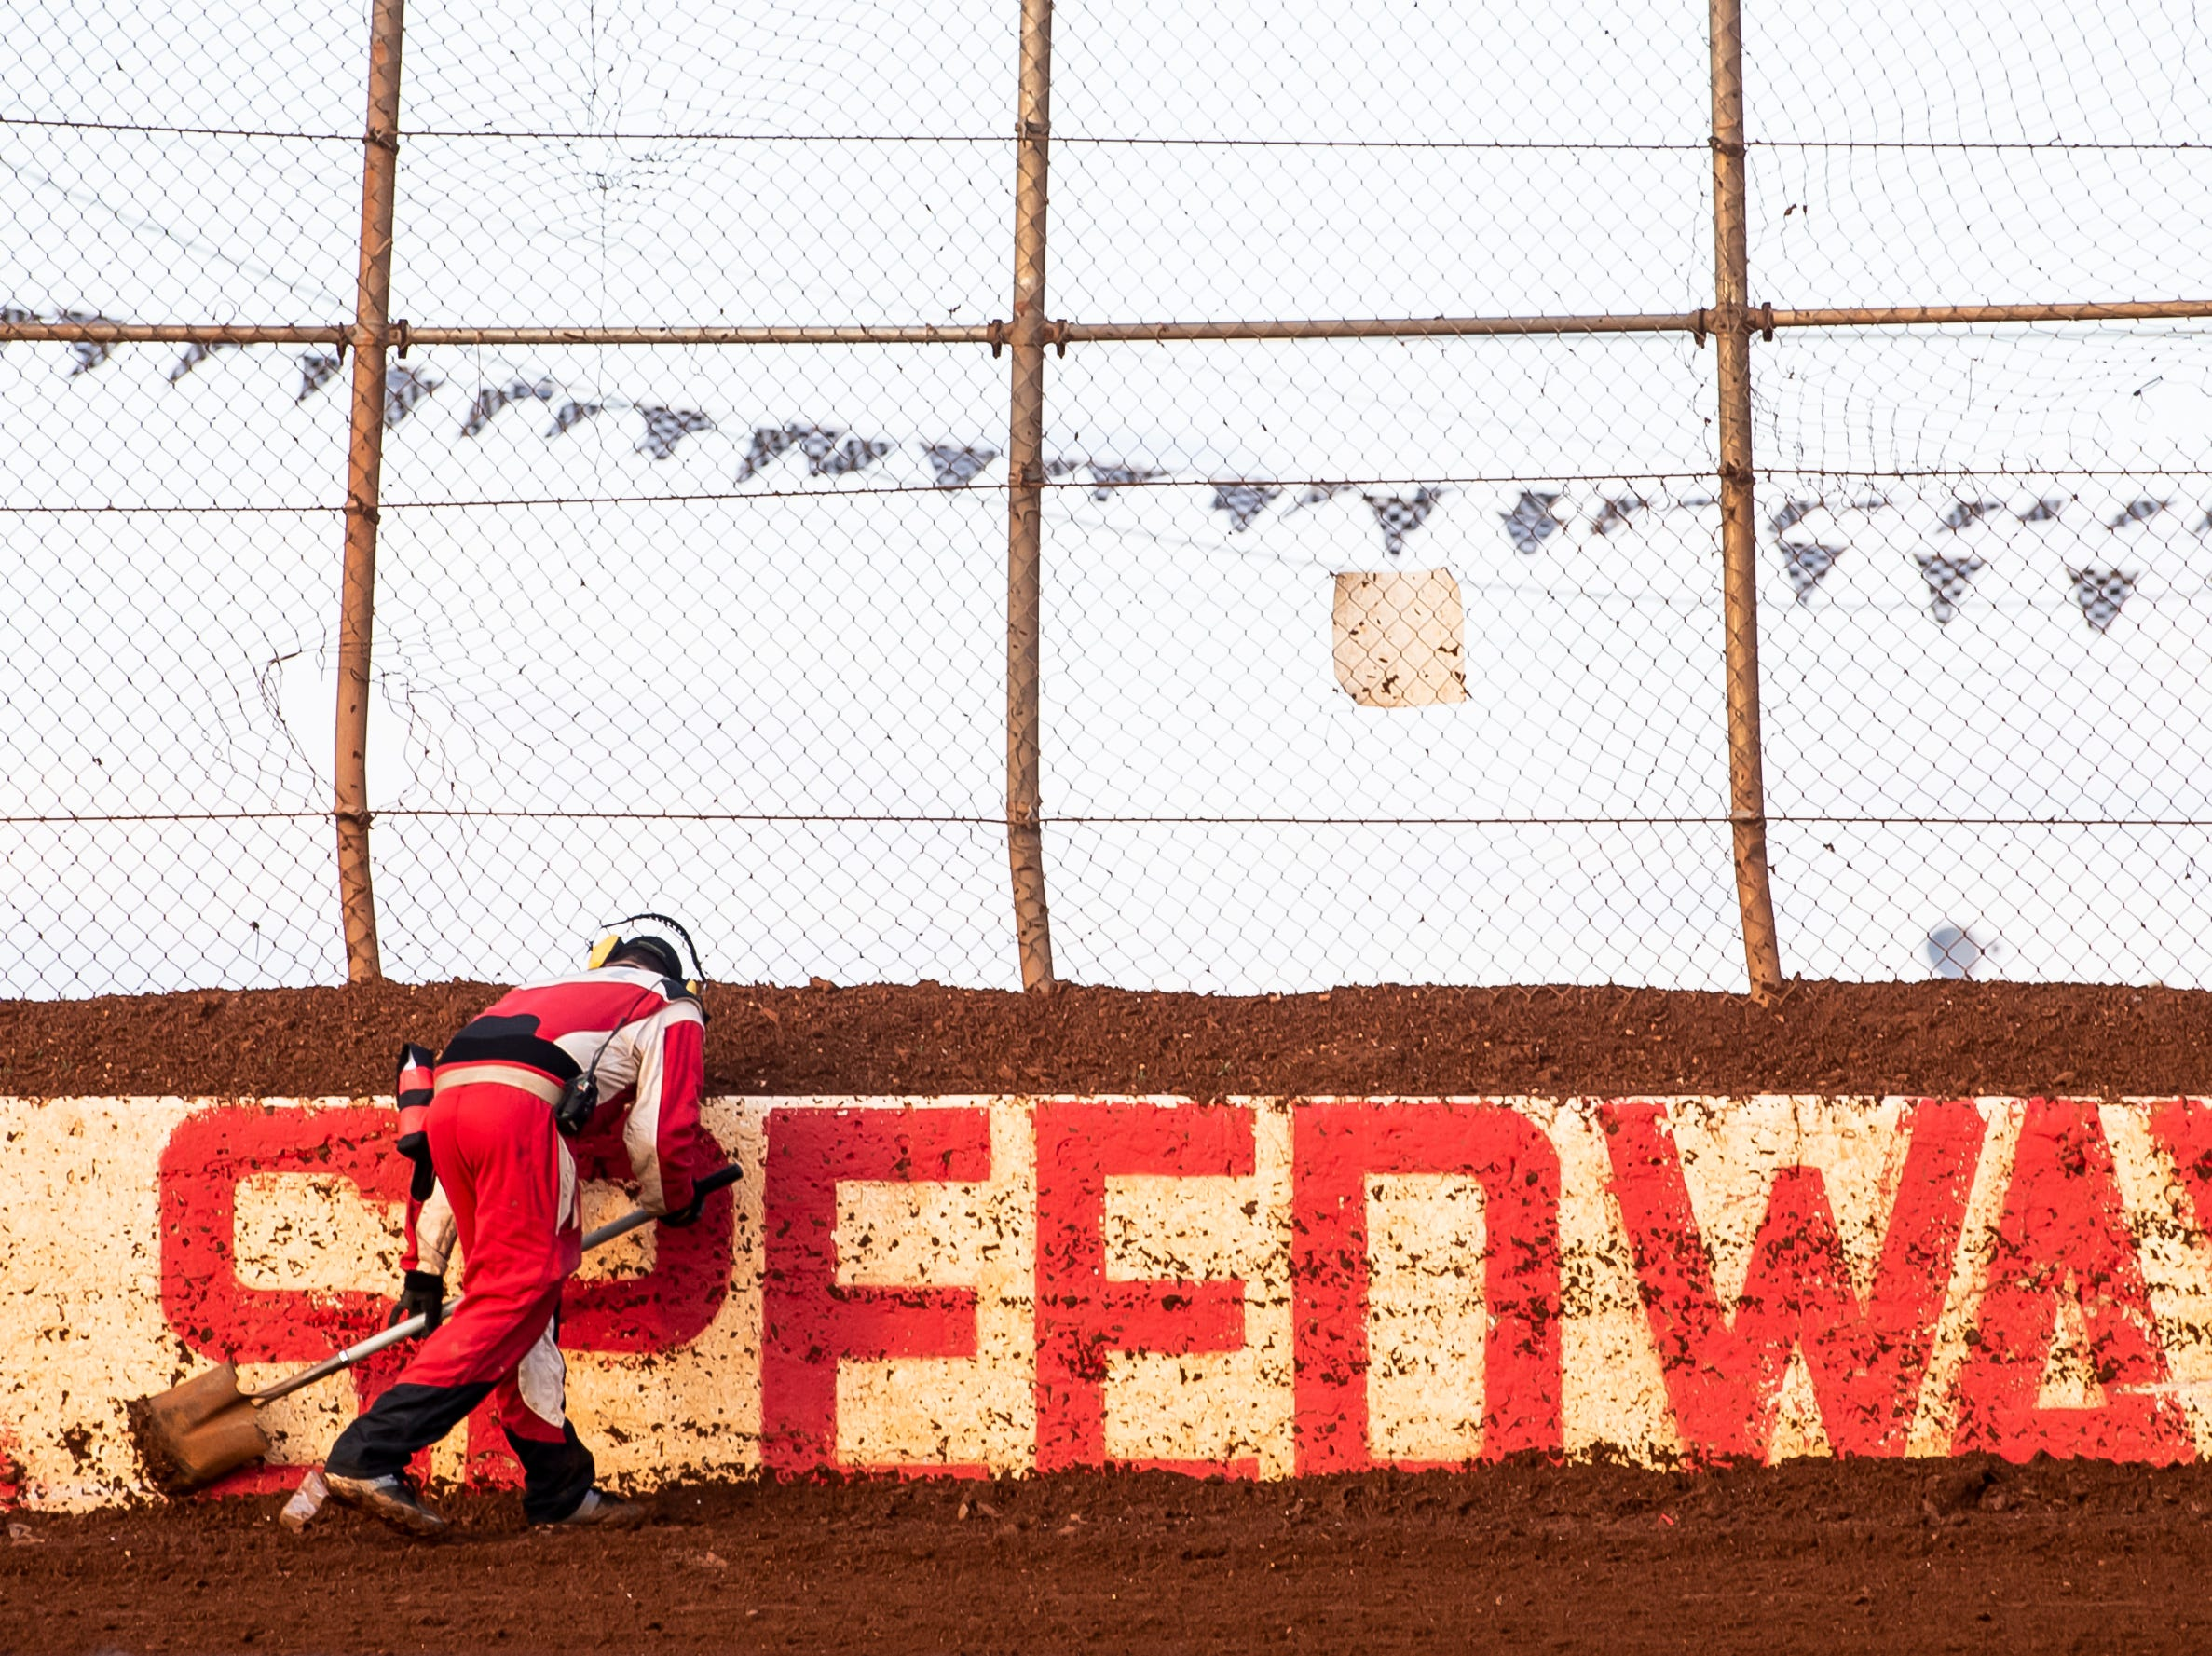 A track crew member scrapes mud off the wall during the World of Outlaws Gettysburg Clash at Lincoln Speedway in Abbottstown on Wednesday, May 15, 2019.